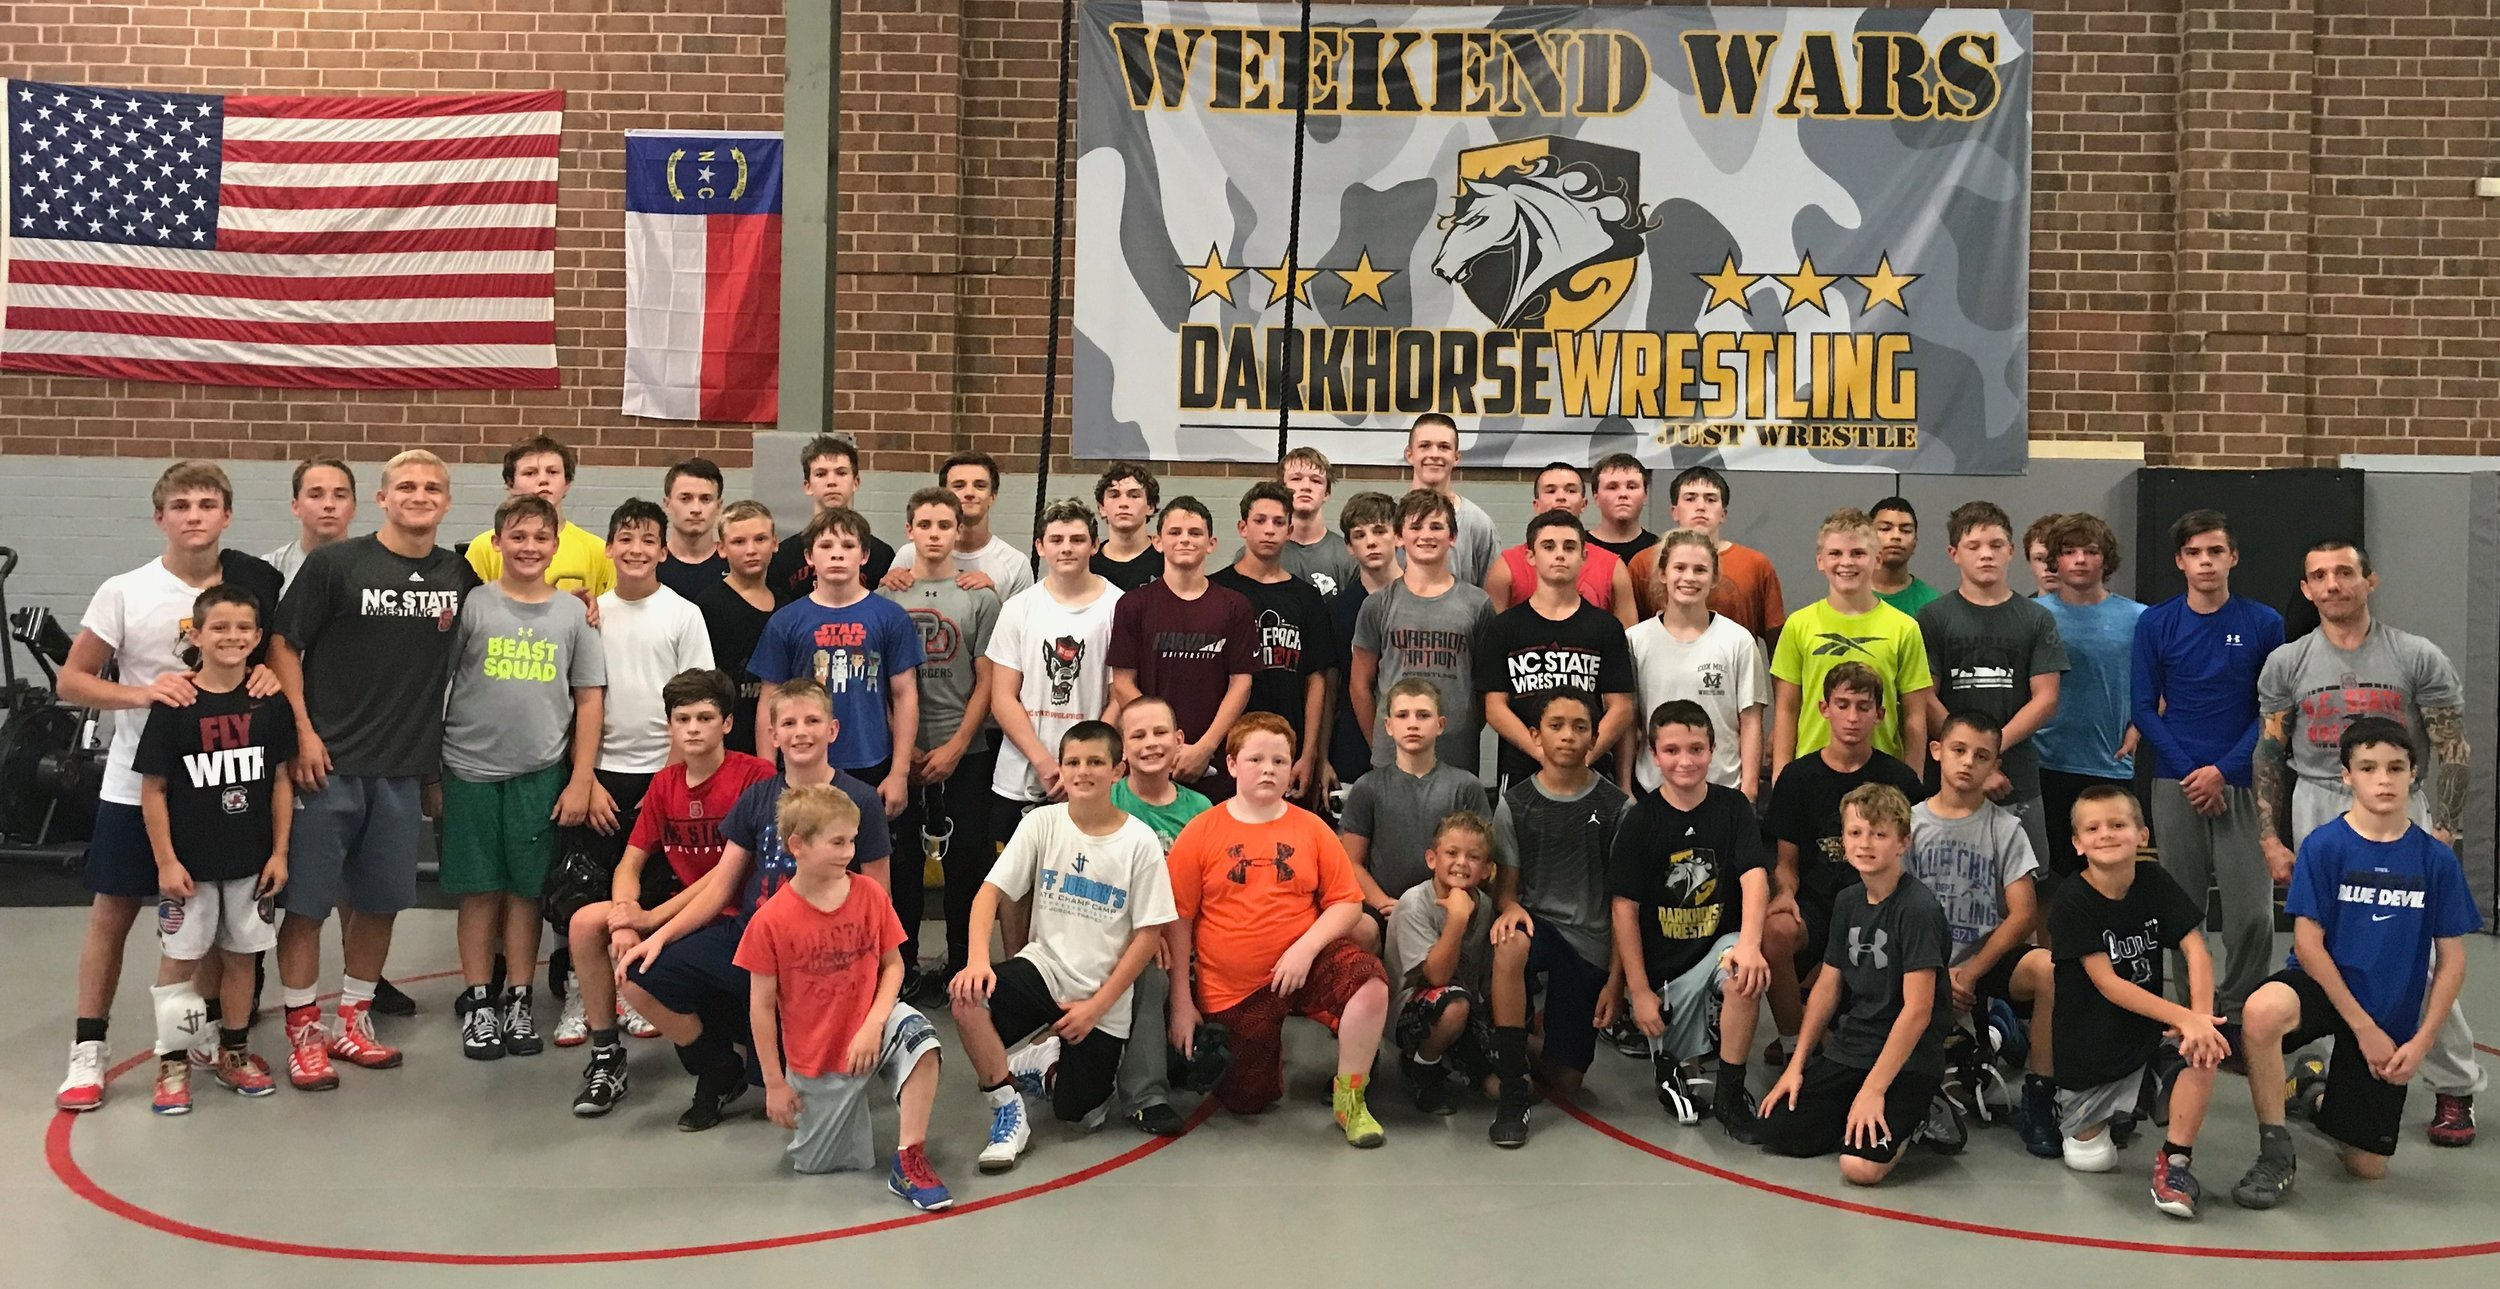 NC STATE wrestler and NCAA All-American - HAYDEN HIDLAY was a counselor at this year's camp!